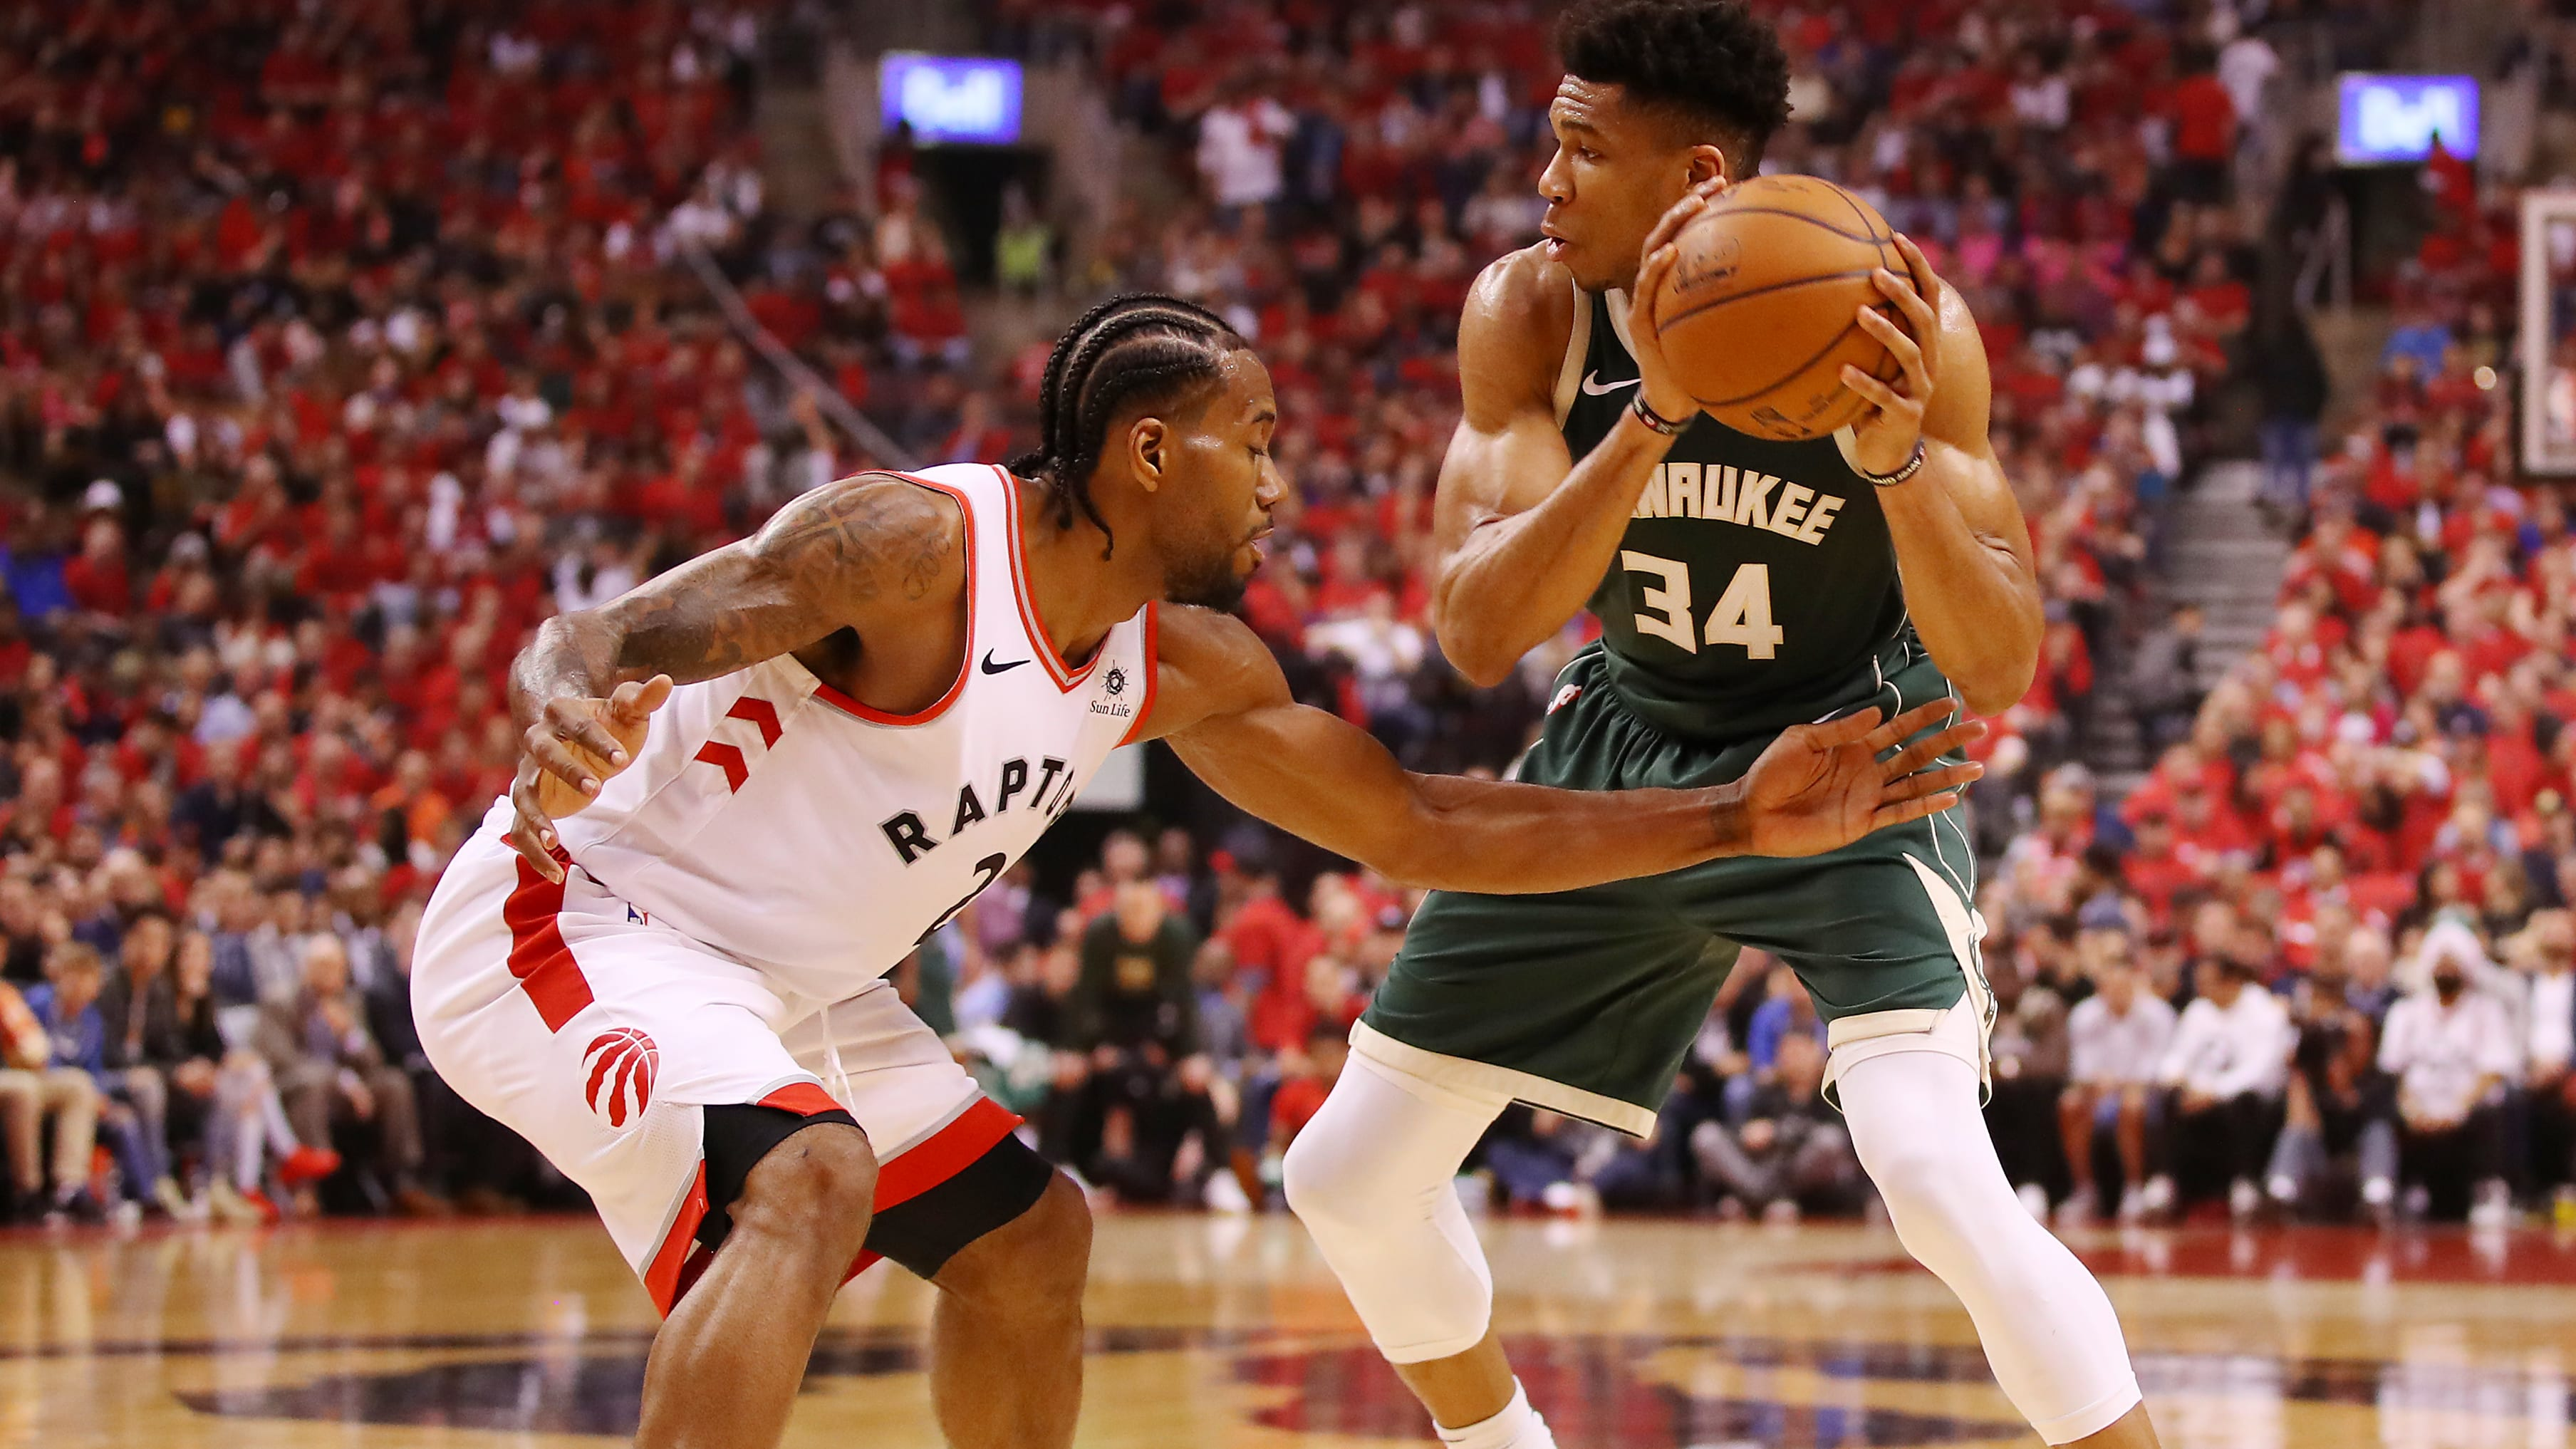 TORONTO, ONTARIO - MAY 19: Giannis Antetokounmpo #34 of the Milwaukee Bucks handles the ball against Kawhi Leonard #2 of the Toronto Raptors during the first half in game three of the NBA Eastern Conference Finals at Scotiabank Arena on May 19, 2019 in Toronto, Canada. NOTE TO USER: User expressly acknowledges and agrees that, by downloading and or using this photograph, User is consenting to the terms and conditions of the Getty Images License Agreement. (Photo by Gregory Shamus/Getty Images)